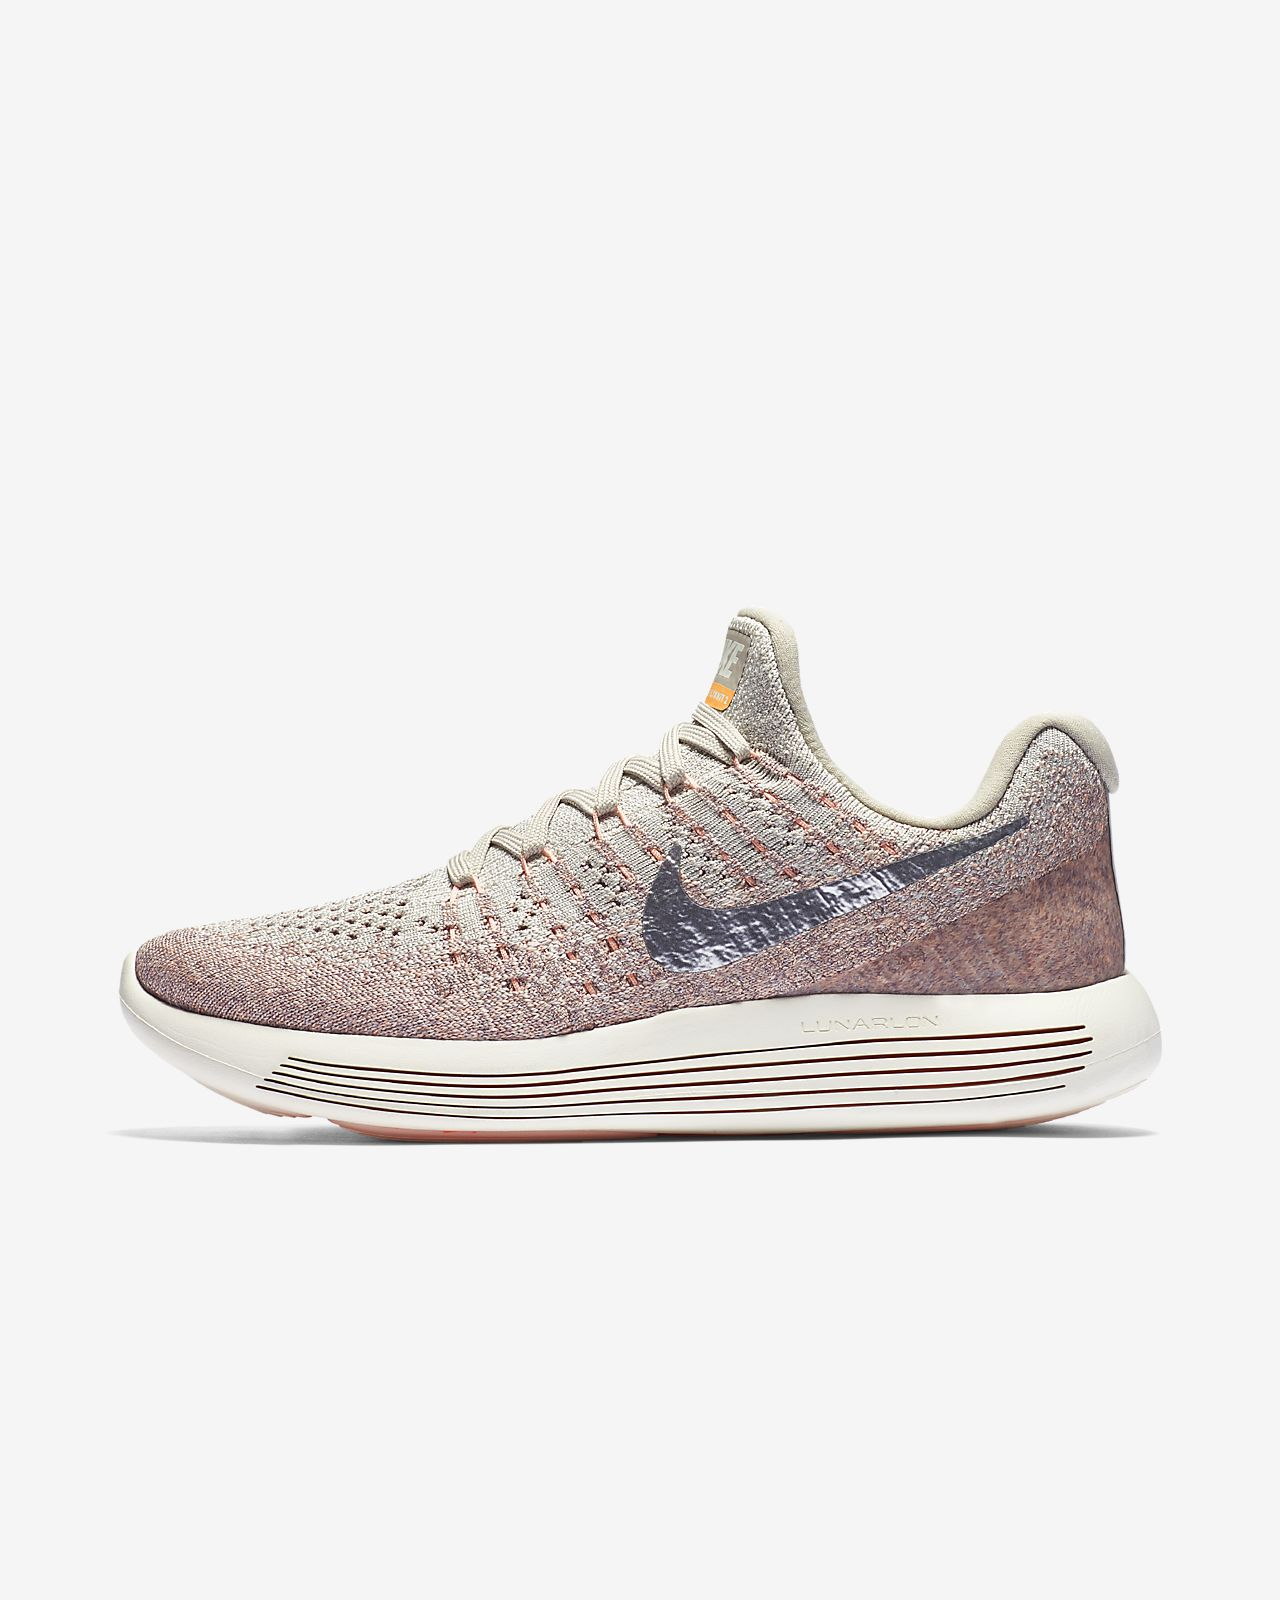 cheap for discount 9fbcb 69da5 ... spain nike lunarepic low flyknit 2 womens running shoe bcb6a 12d84